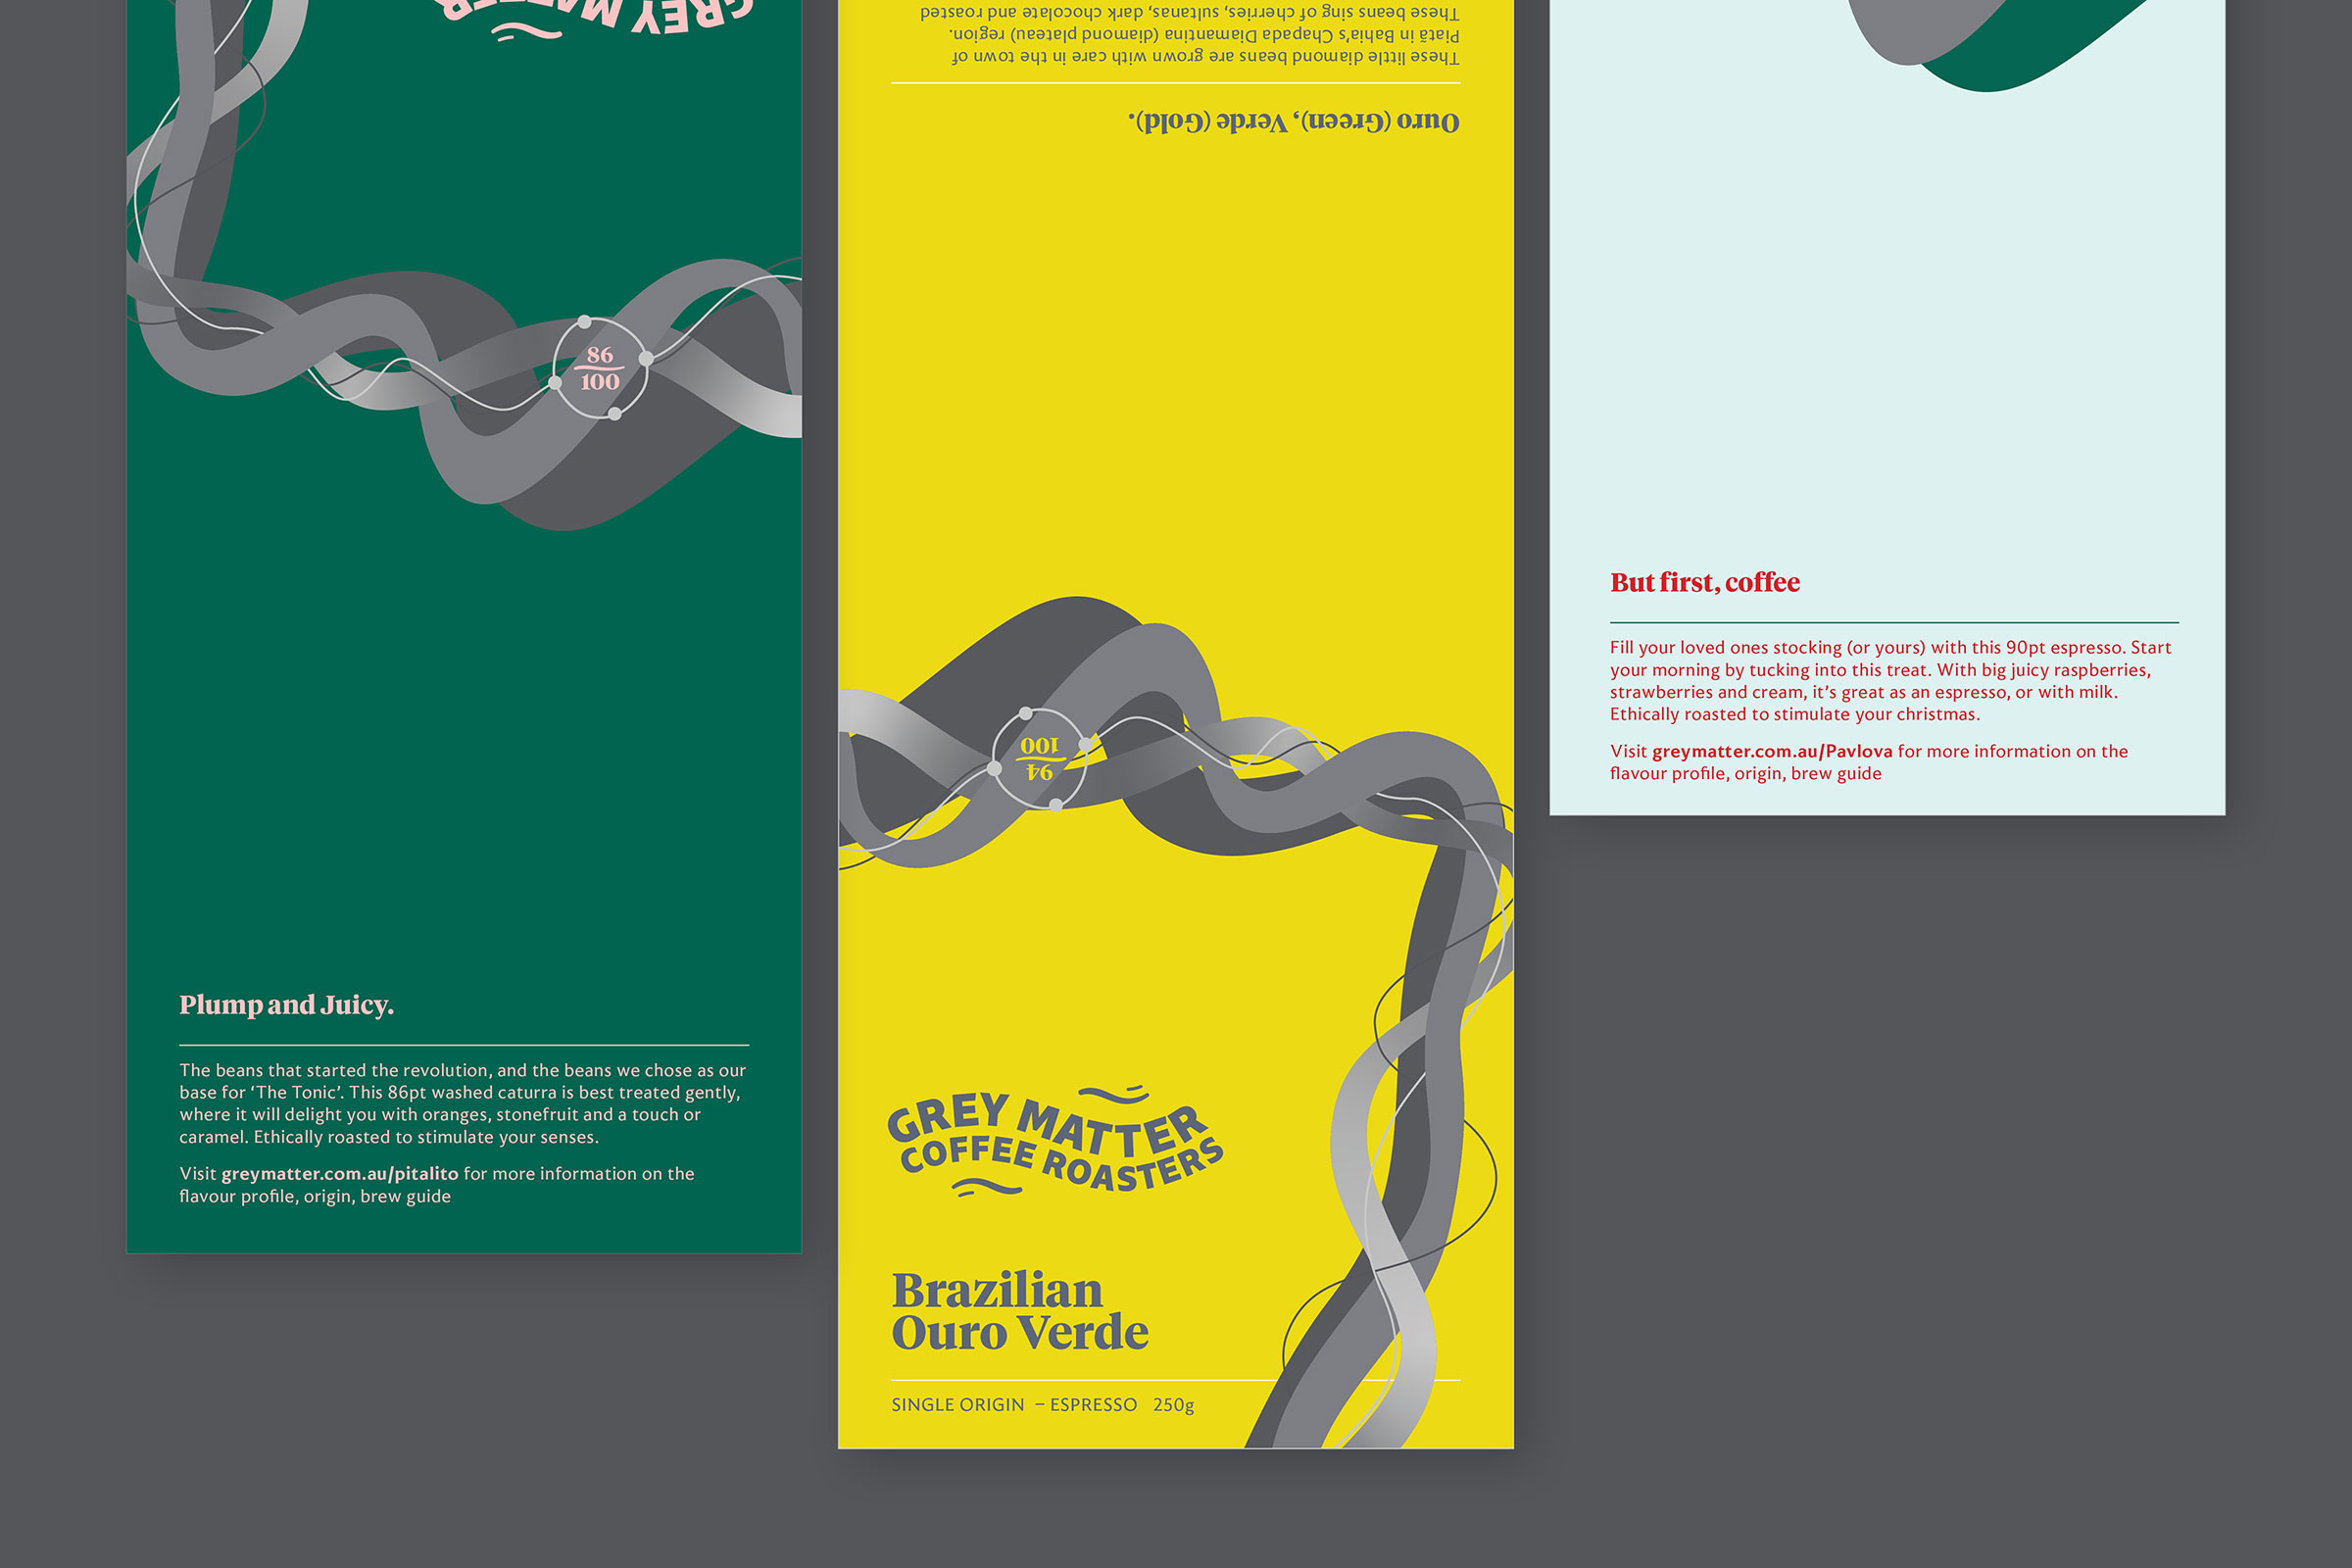 Grey Matter Coffee Roasters brand labels for three different coffees.